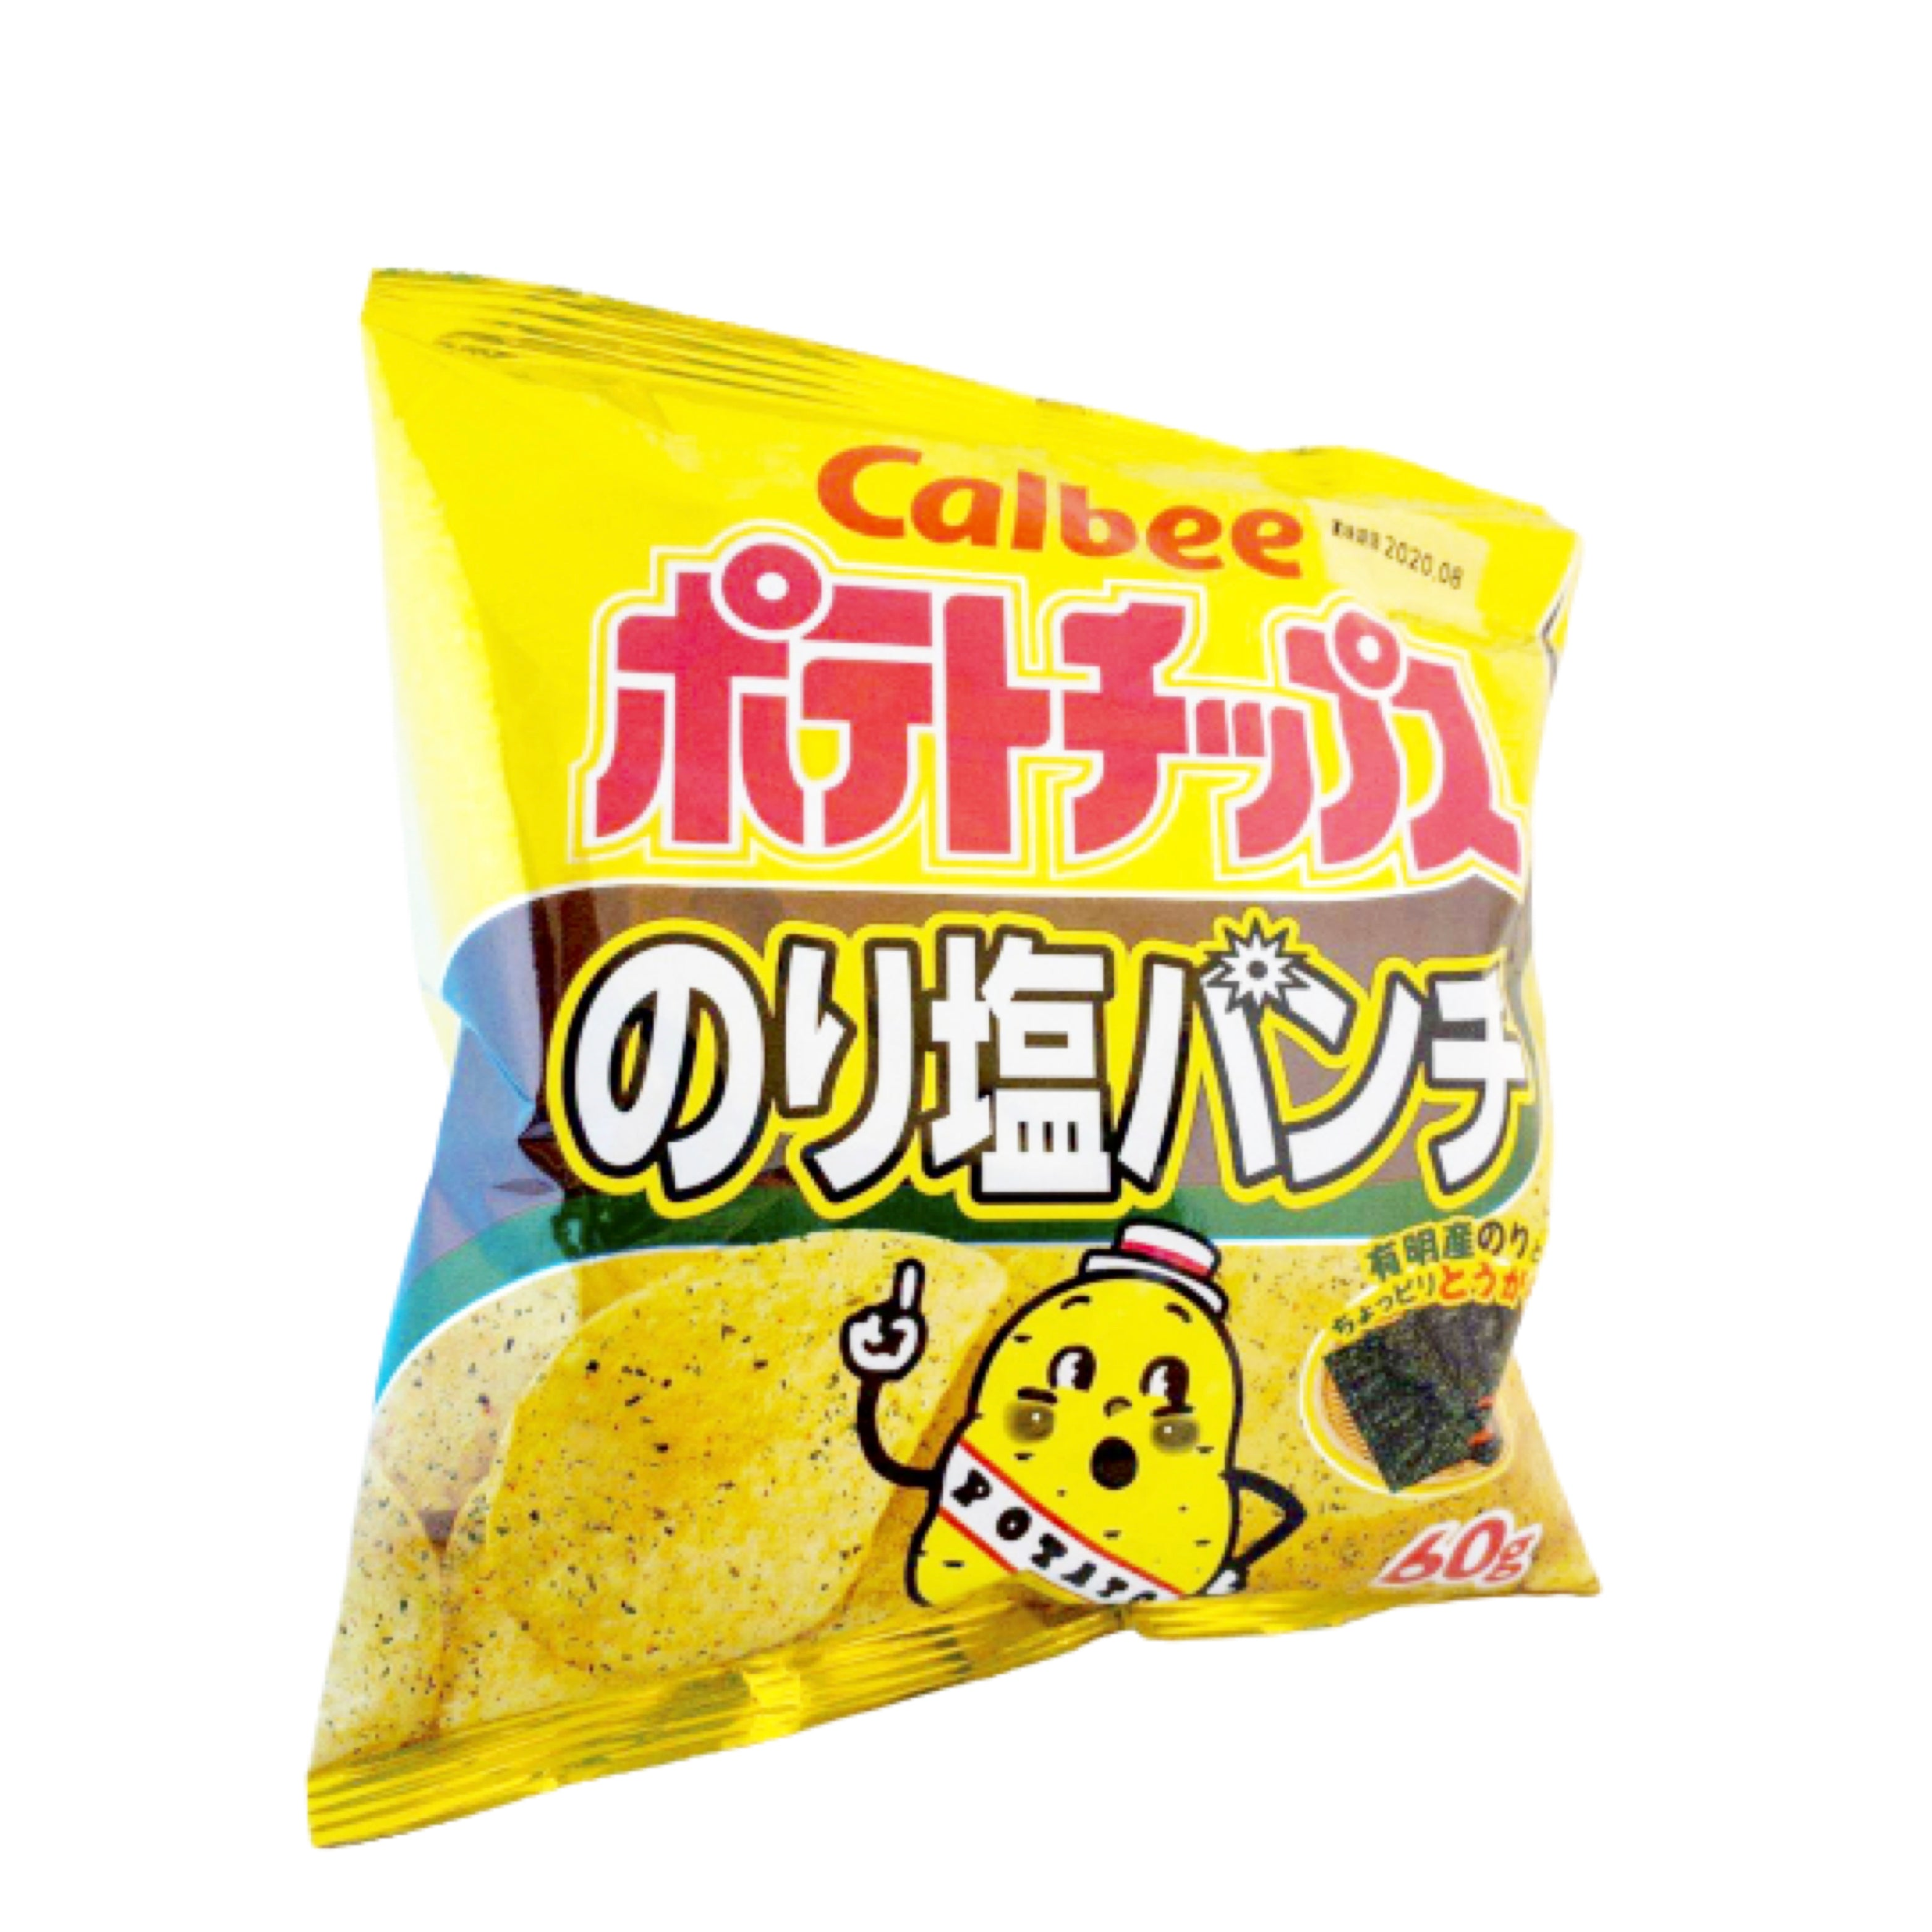 Calbee Potato Chips (Spicy Seaweed Flavor) 可必洋芋片 (辣海苔)